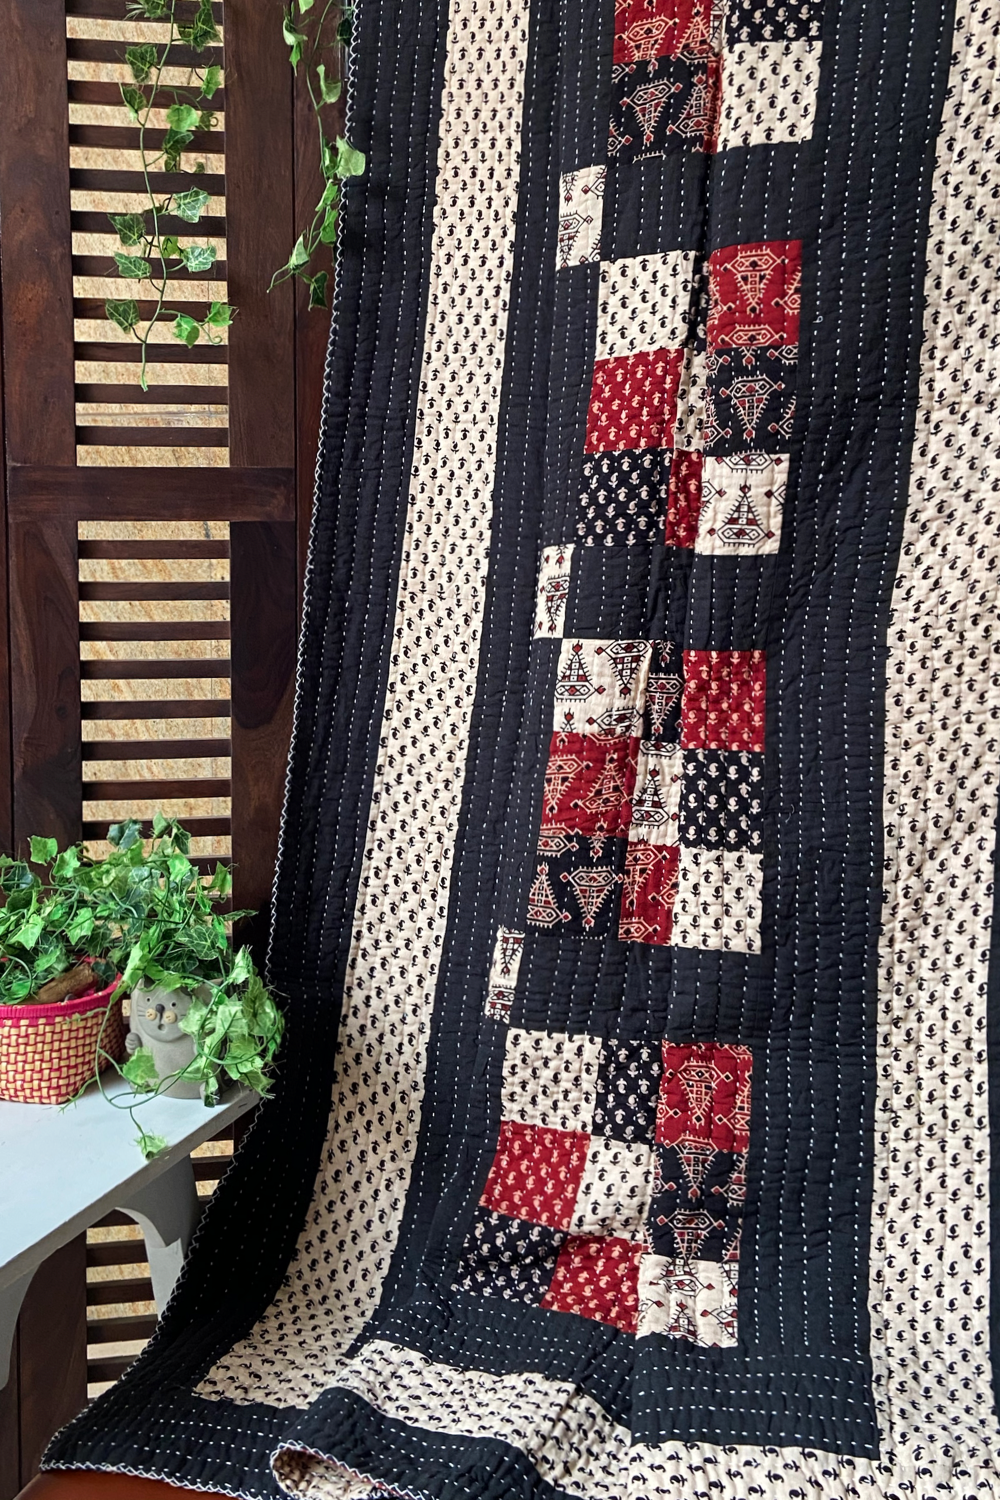 handcrafted single quilt with filler - monochrome melodies & madder drops